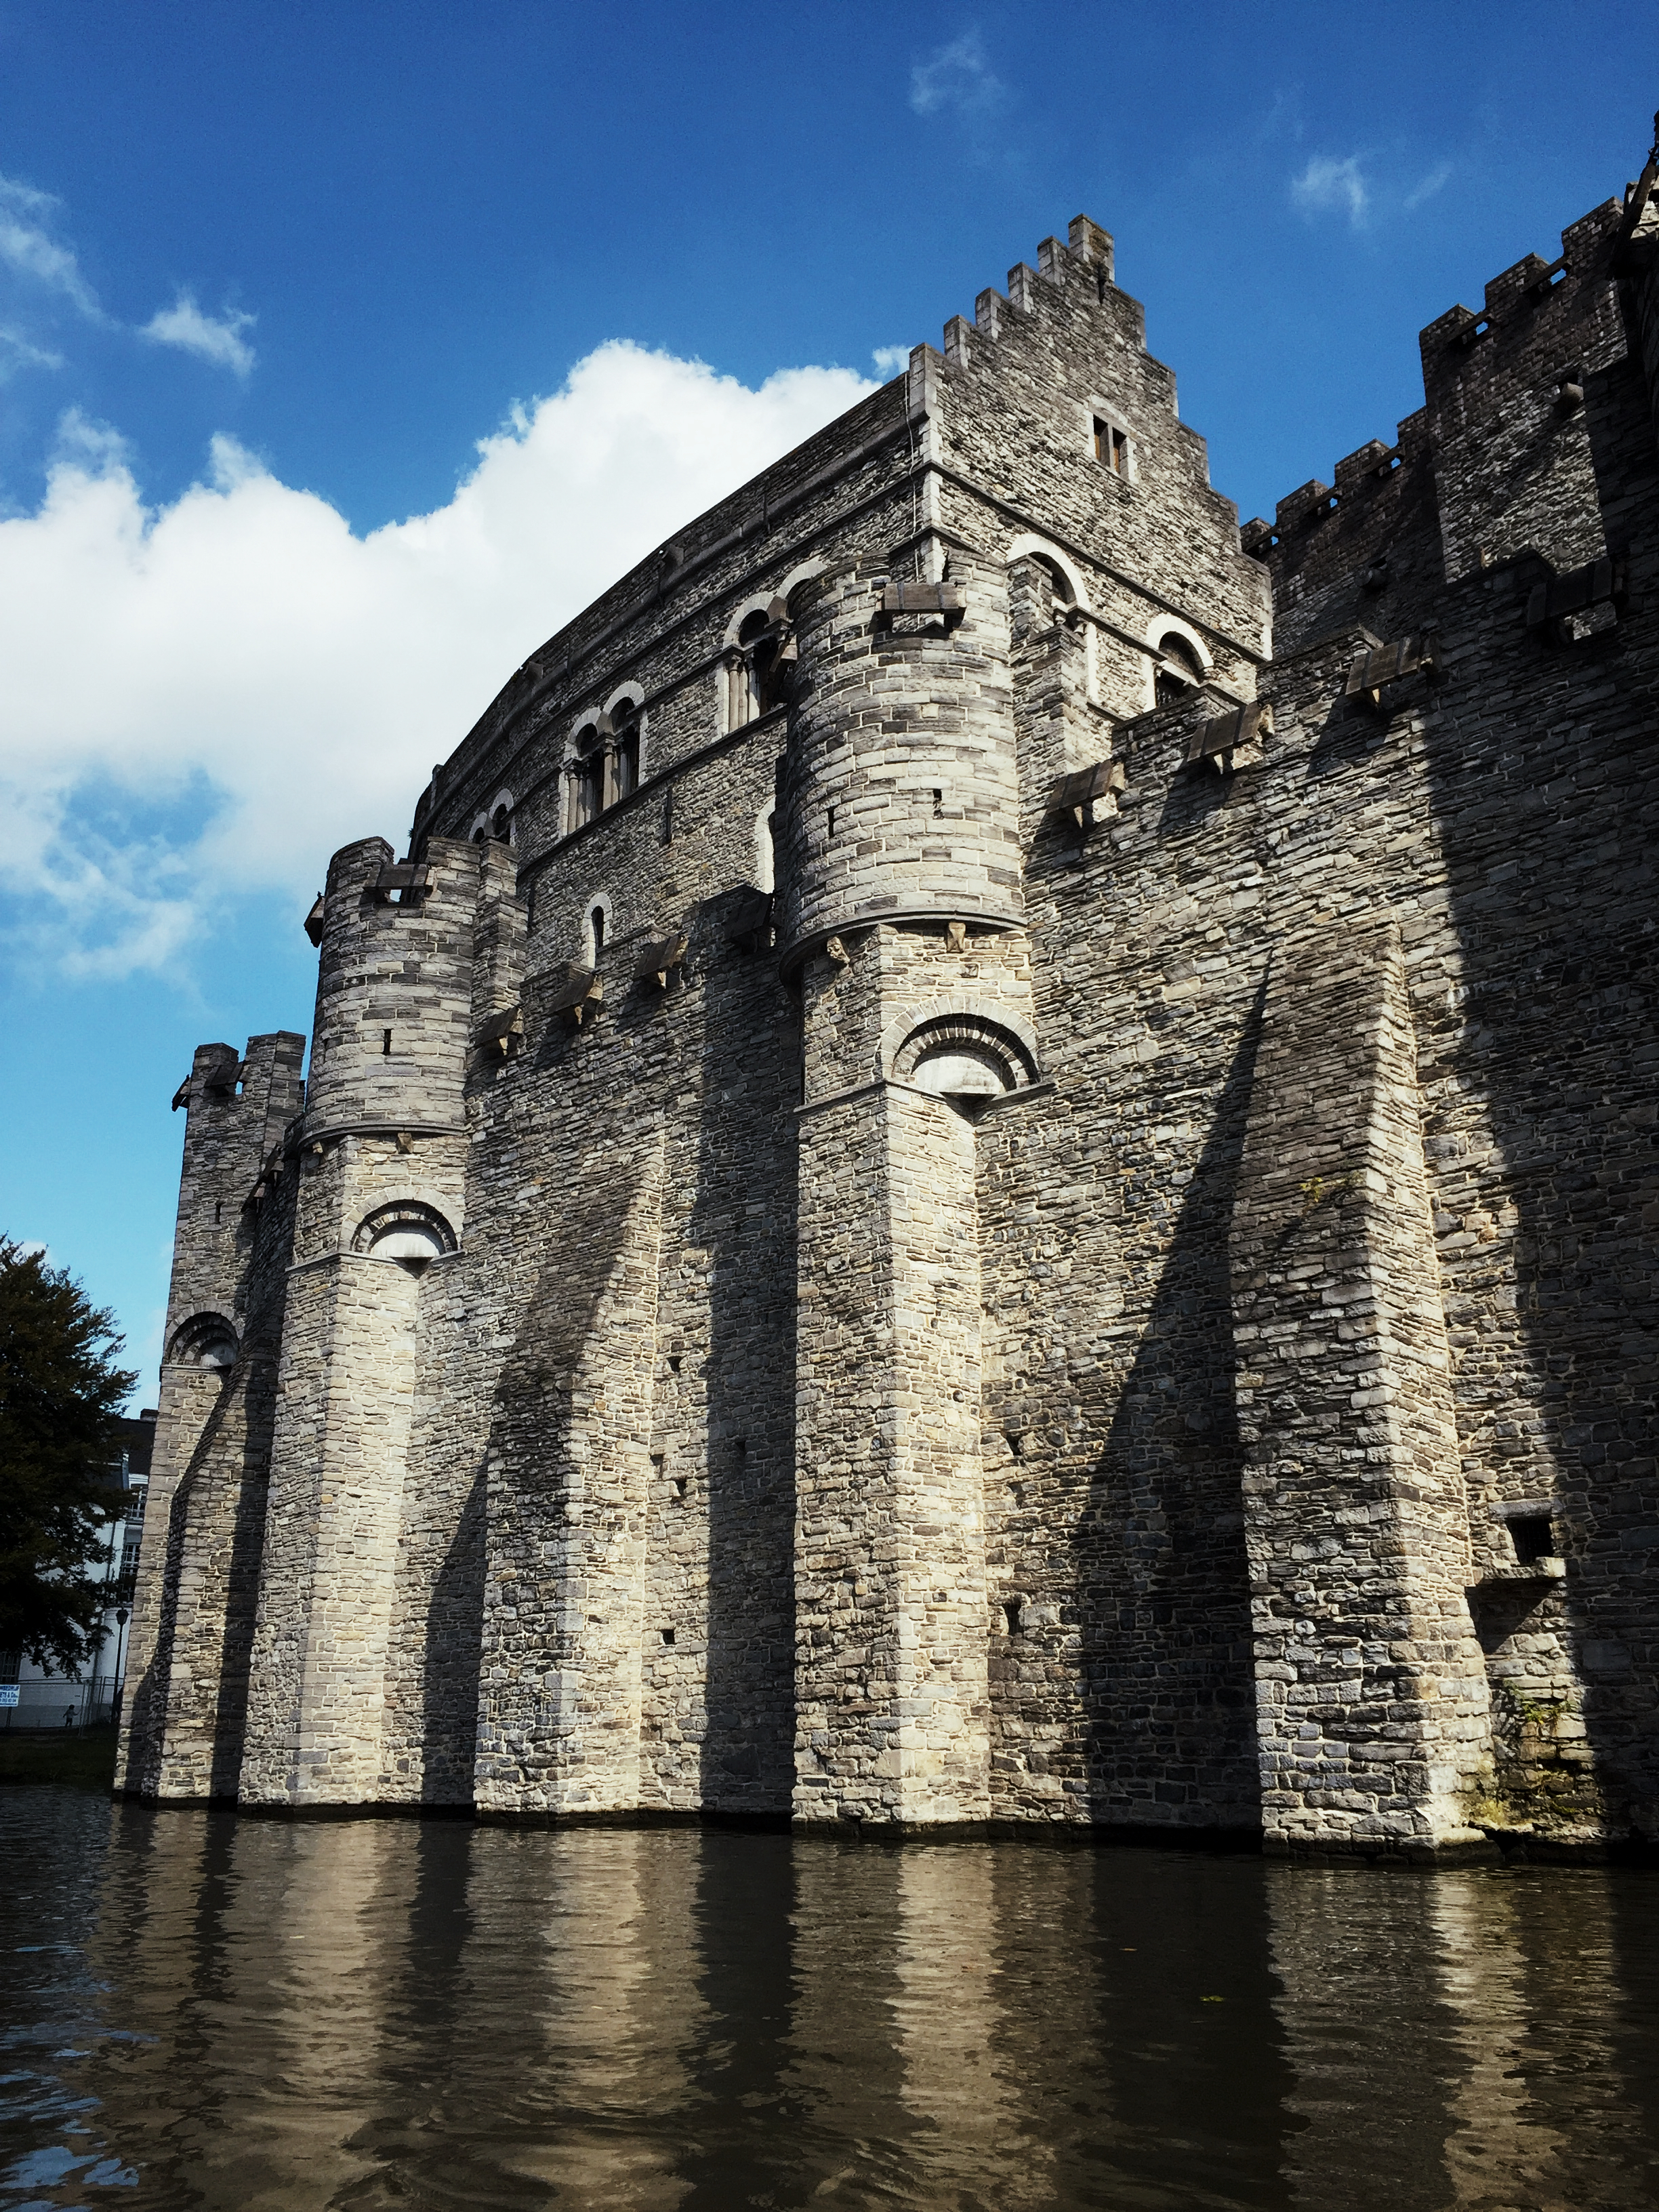 Castle with a moat!